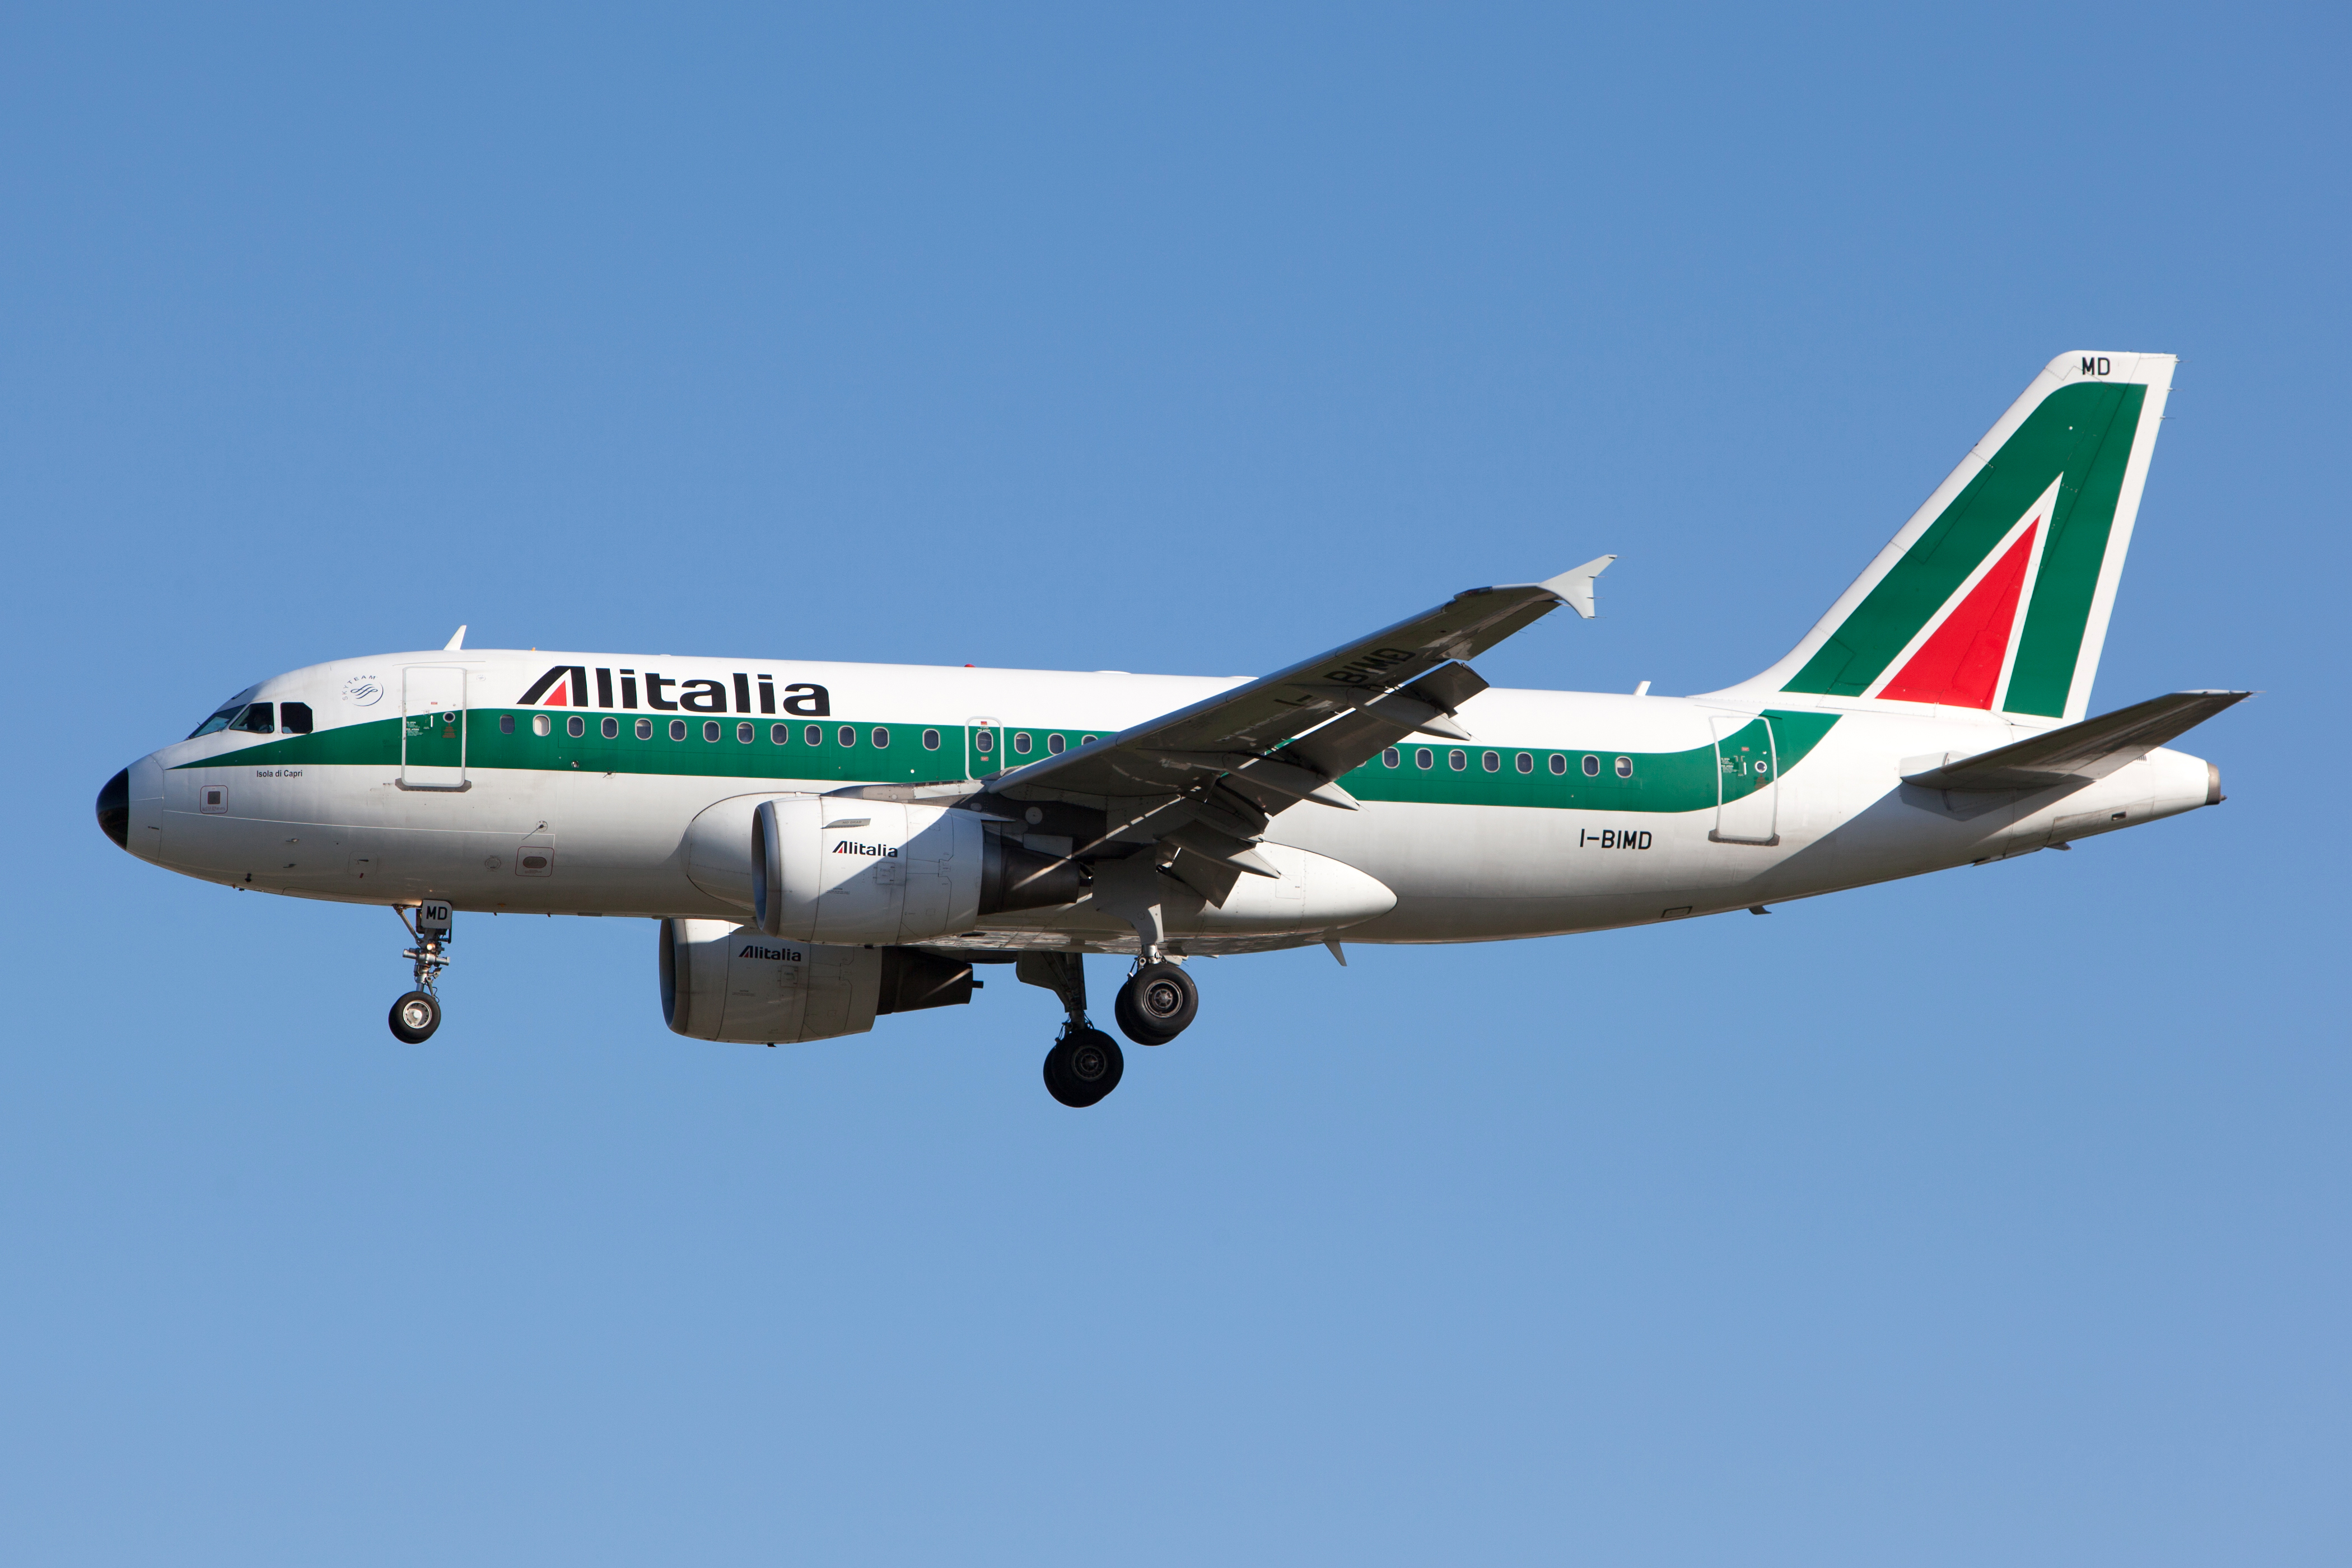 DLA Piper will advise Etihad-owned Alitalia in second administration